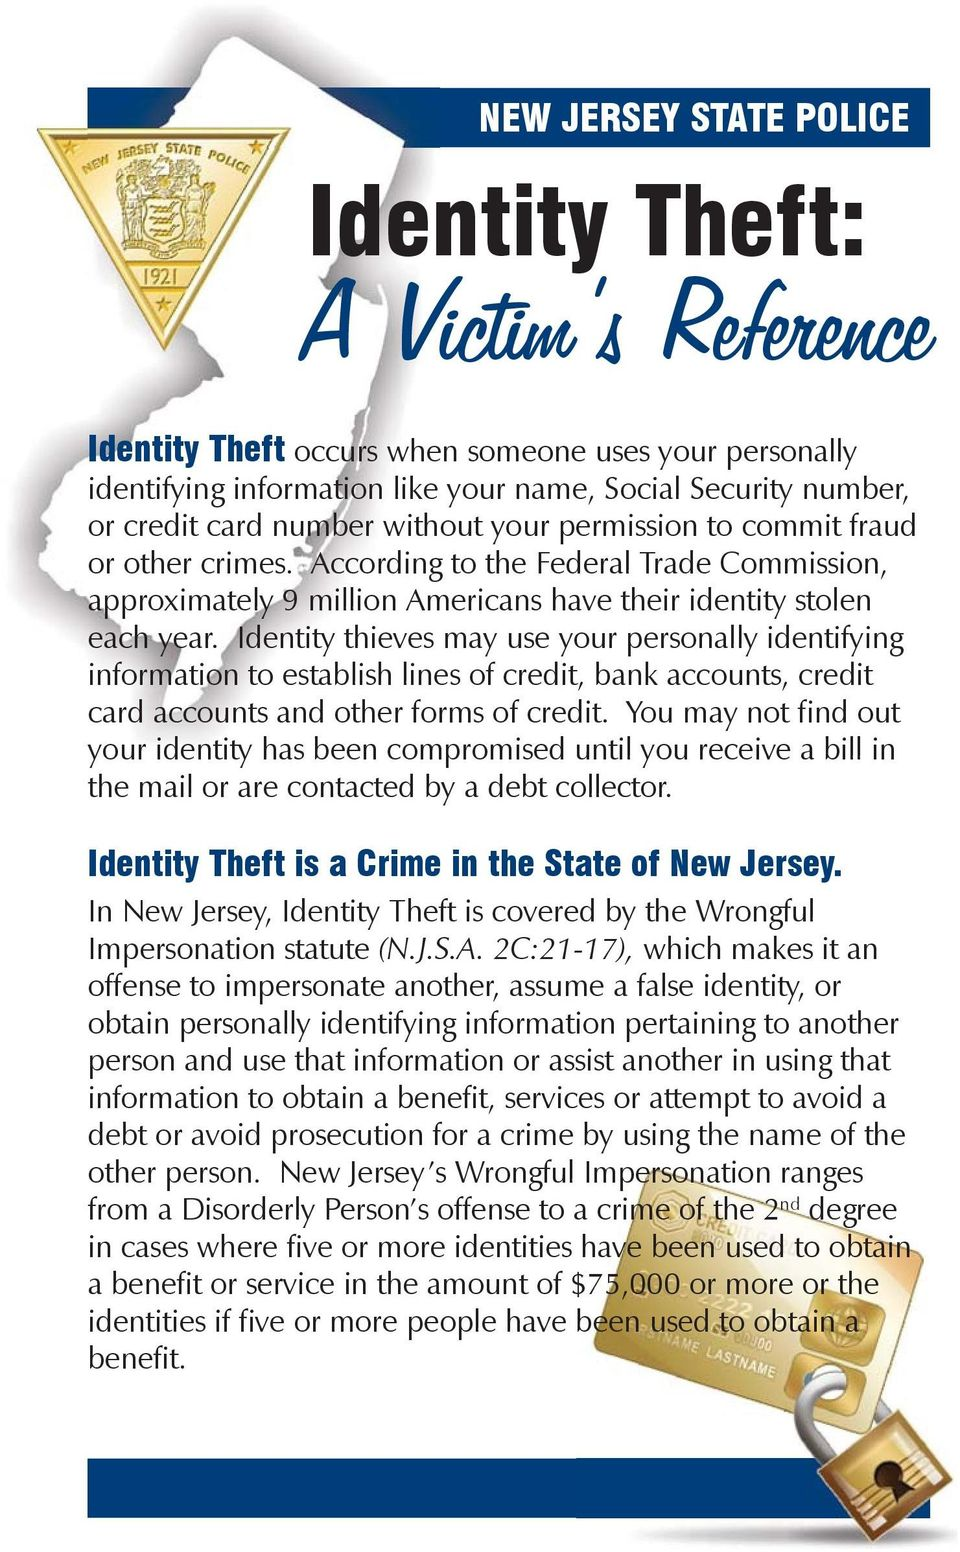 Identity thieves may use your personally identifying information to establish lines of credit, bank accounts, credit card accounts and other forms of credit.